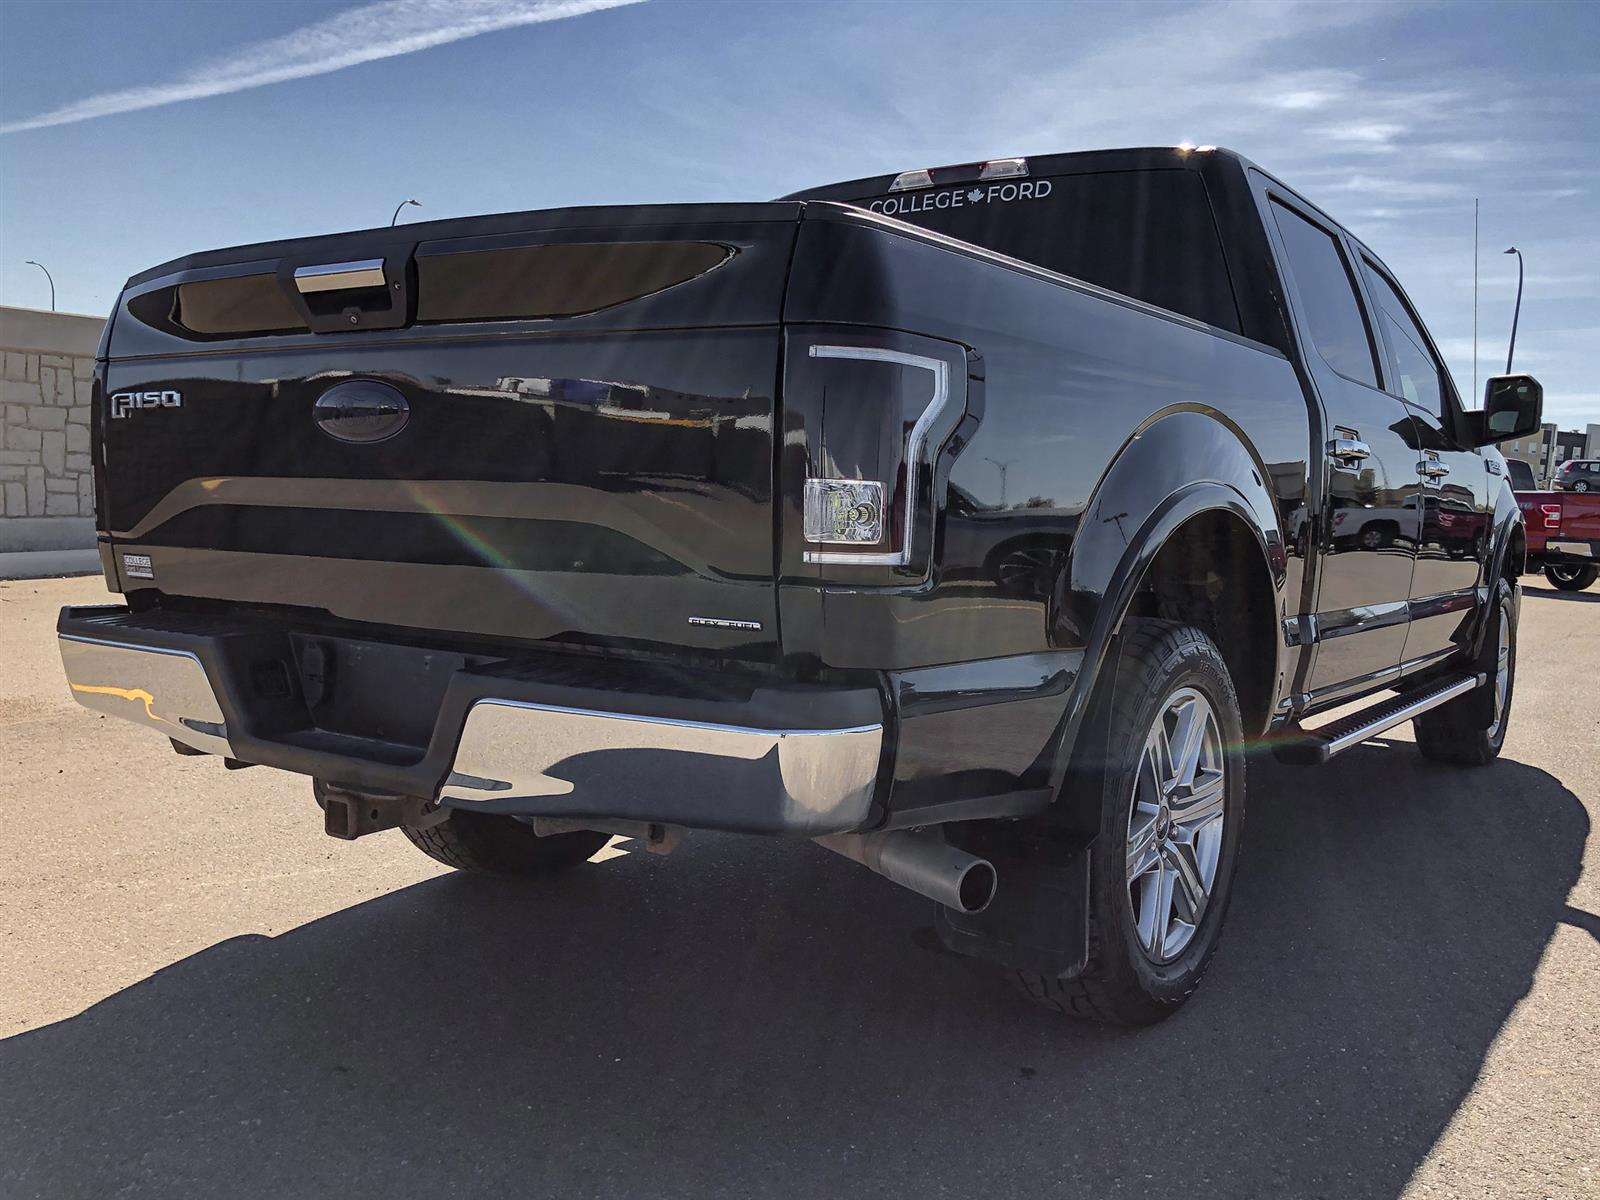 2016 Ford F-150 XLT | 5.0L V8 | 4X4 | TRAILER TOW PACKAGE | KEYLESS ENTRY